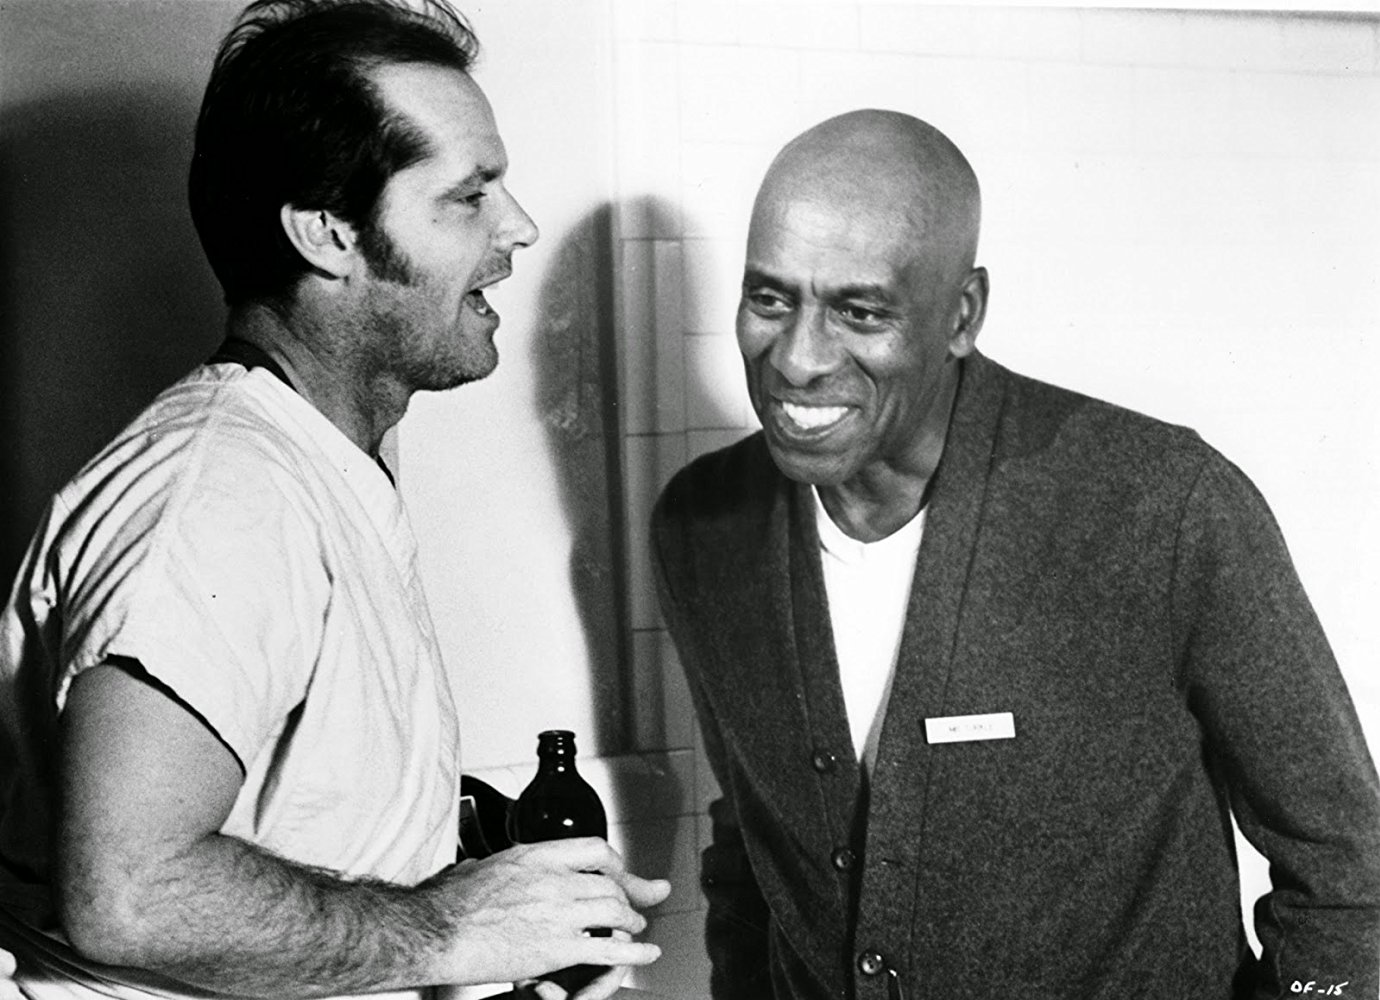 1380x1000 - Scatman Crothers Wallpapers 9